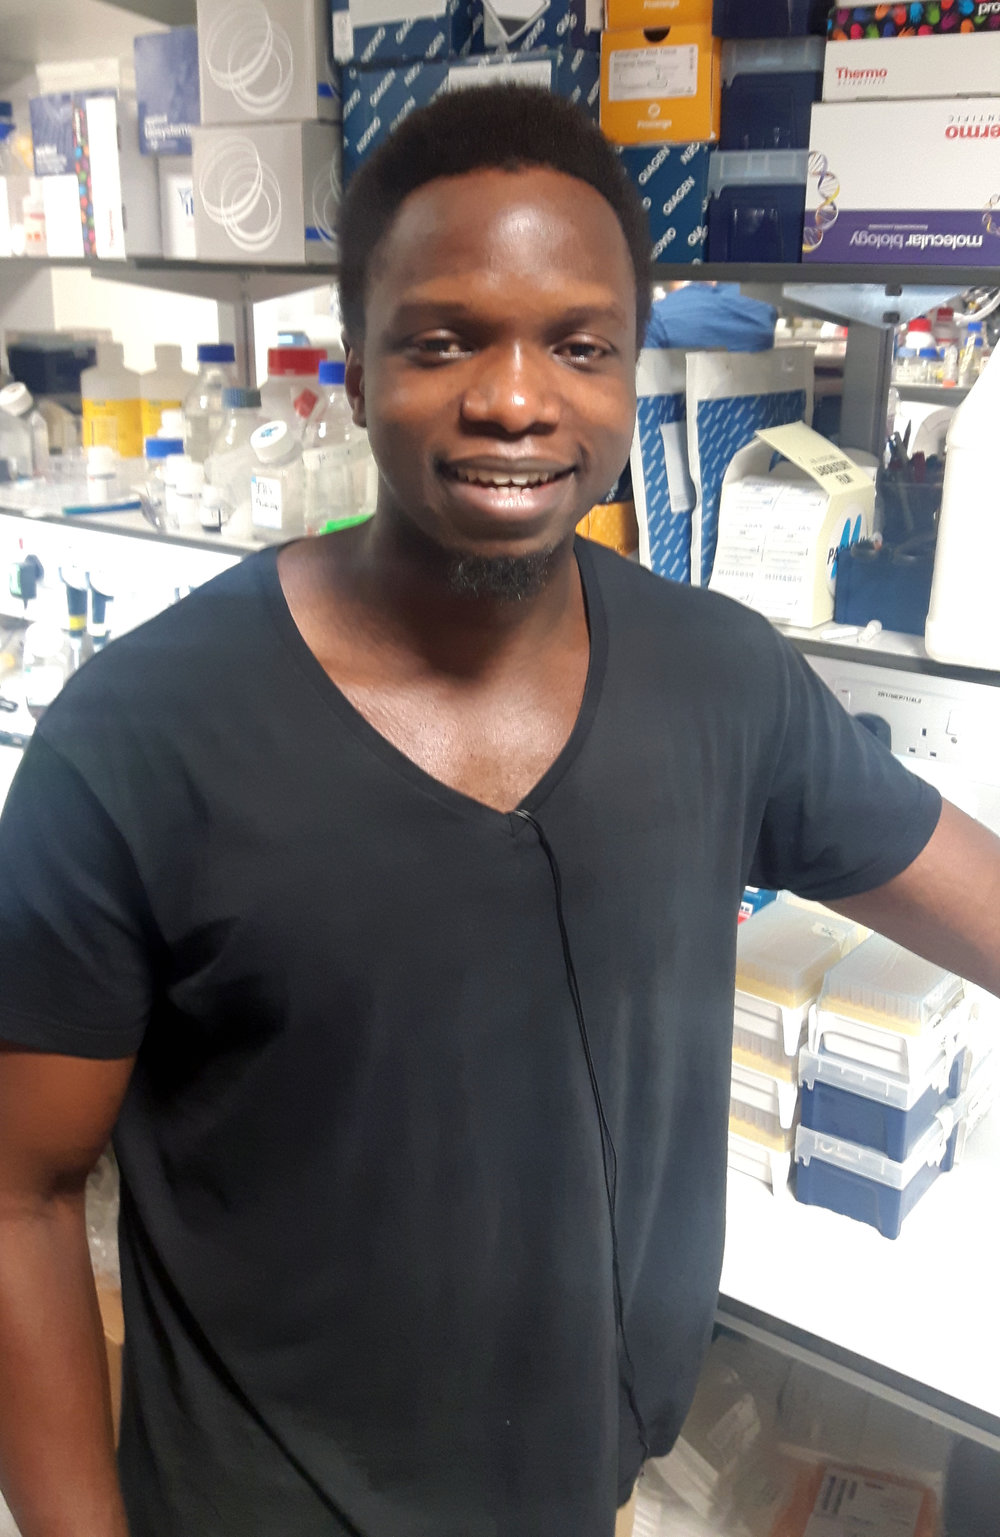 Mphatso 'Pat' Kalemera - PhD StudentI graduated from the University of York in 2014 with a BSc in Biochemistry before undertaking an MRes in Infection Immunology at the University of Liverpool where I took up projects in the pathogenesis of bacterial pneumonia and viral cancers. I recently joined the Grove lab through the UCL-Birkbeck MRC DTP programme. My research questions chiefly concern the efficiency and kinetics of virus entry by Hep C. Firstly, does Hep C glycoprotein sensitivity to antibody correlate with the speed and efficiency of virus entry? Secondly, how does the availability of receptors at the cell surface influence entry kinetics? Lastly, does limiting receptor availability promote antibody-mediated neutralization? I am utilizing some dangerous category 3 virus infection assays and some cool fluorescence microscopy to address these questions.